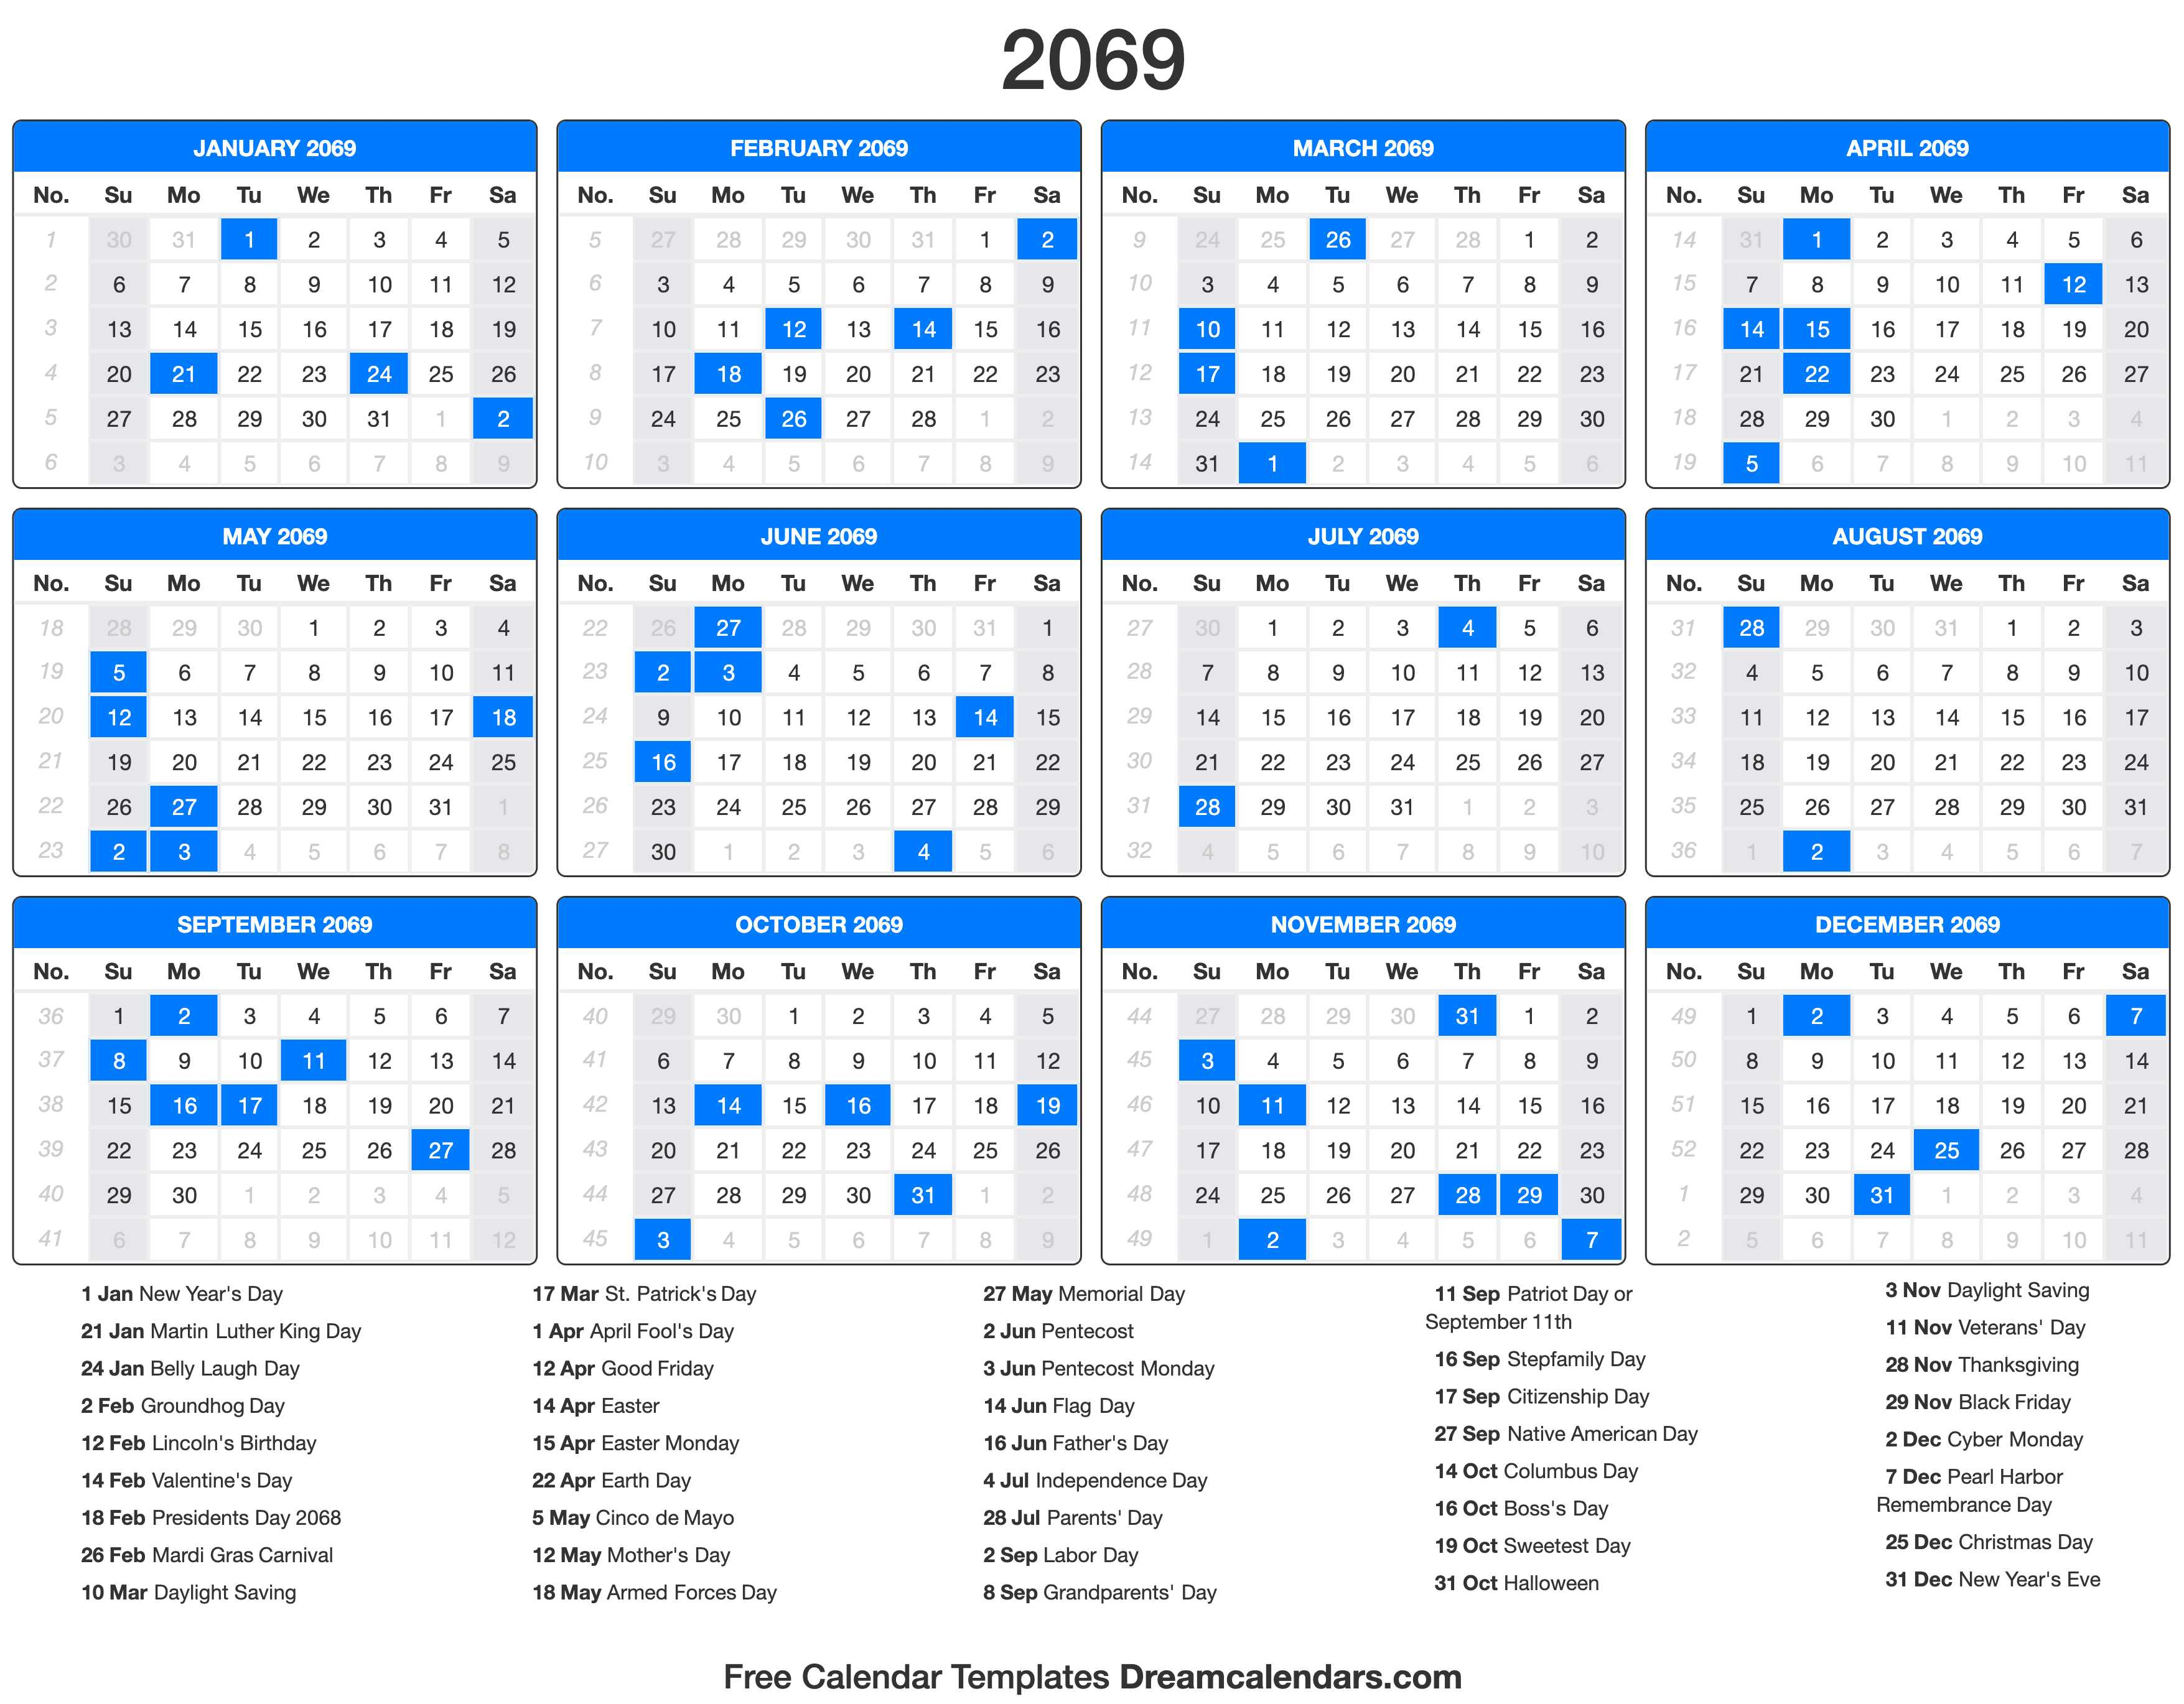 2069 Calendar with holidays